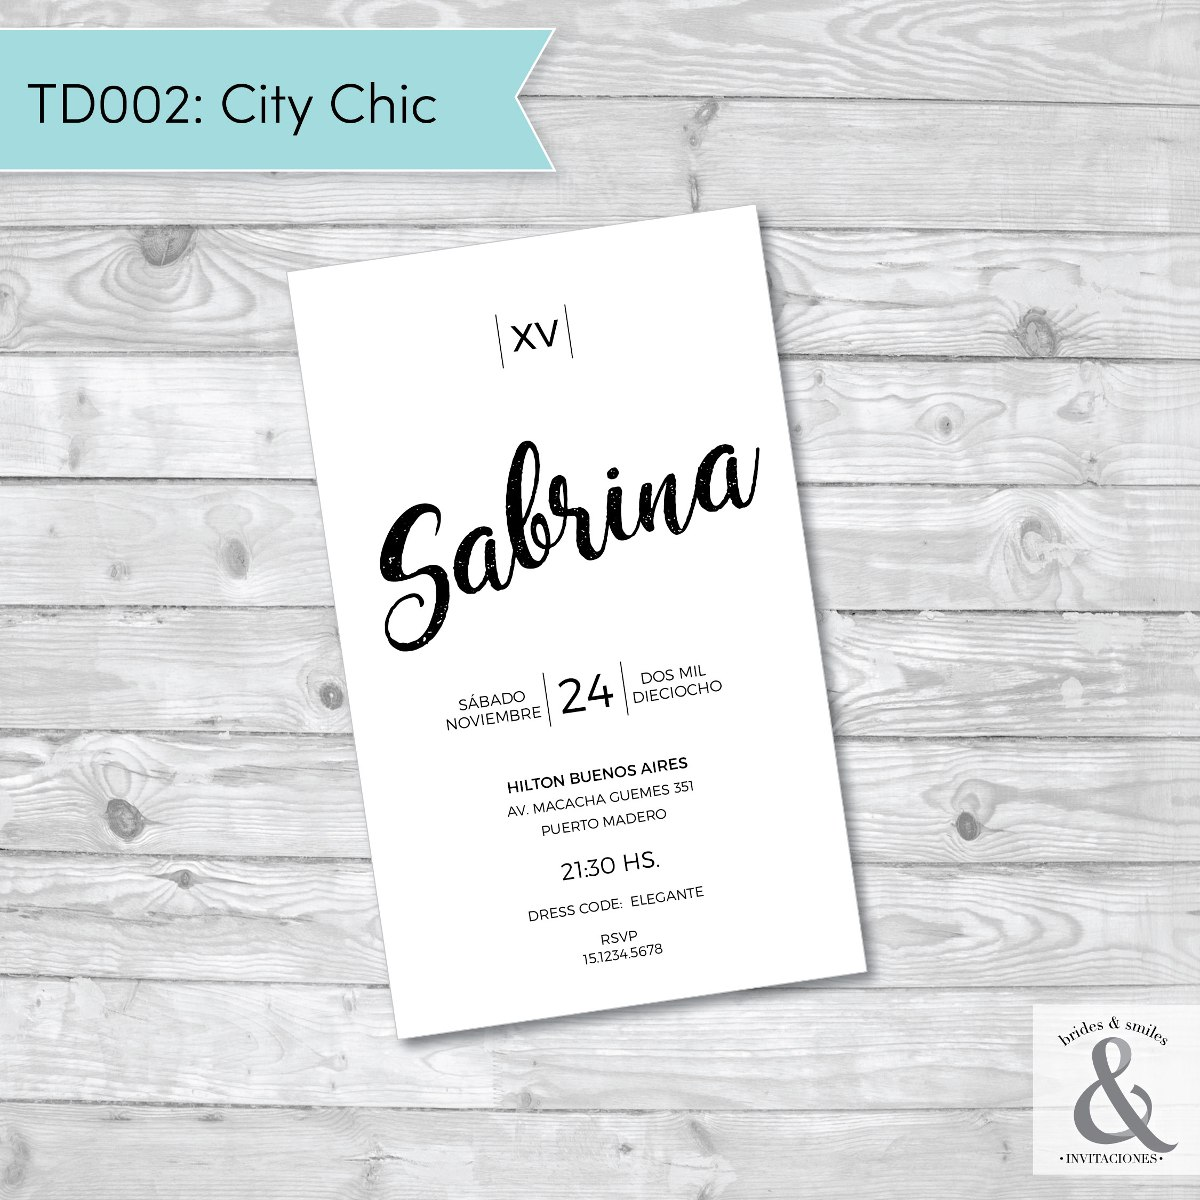 Invitación digital TD002 (City Chic)